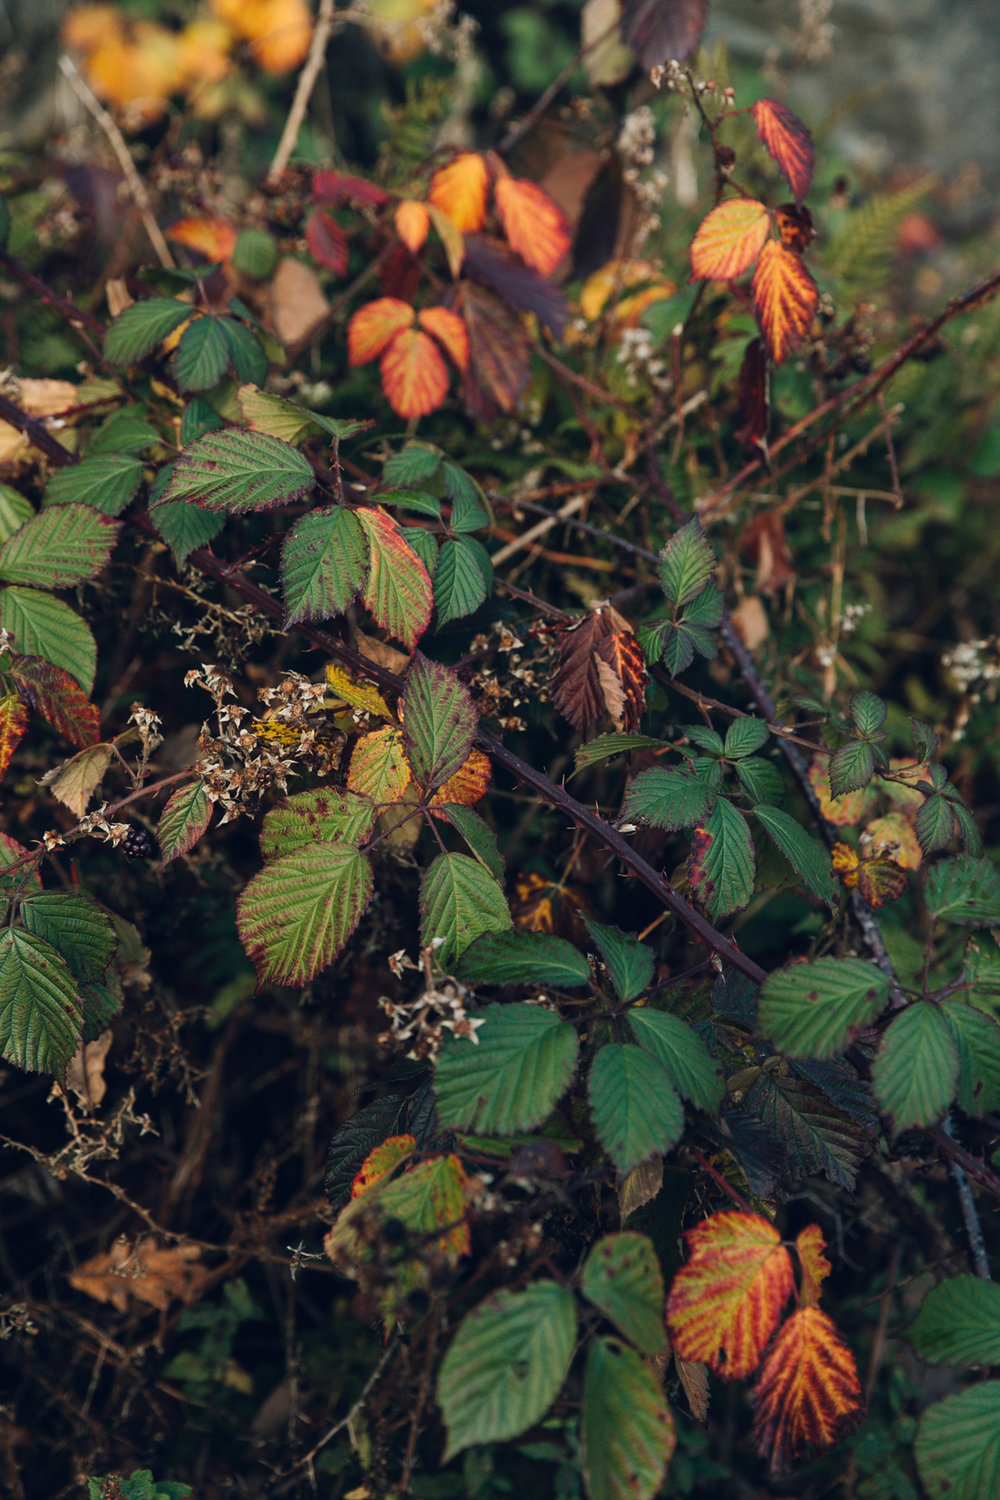 Autumn colours in the hedgerow.